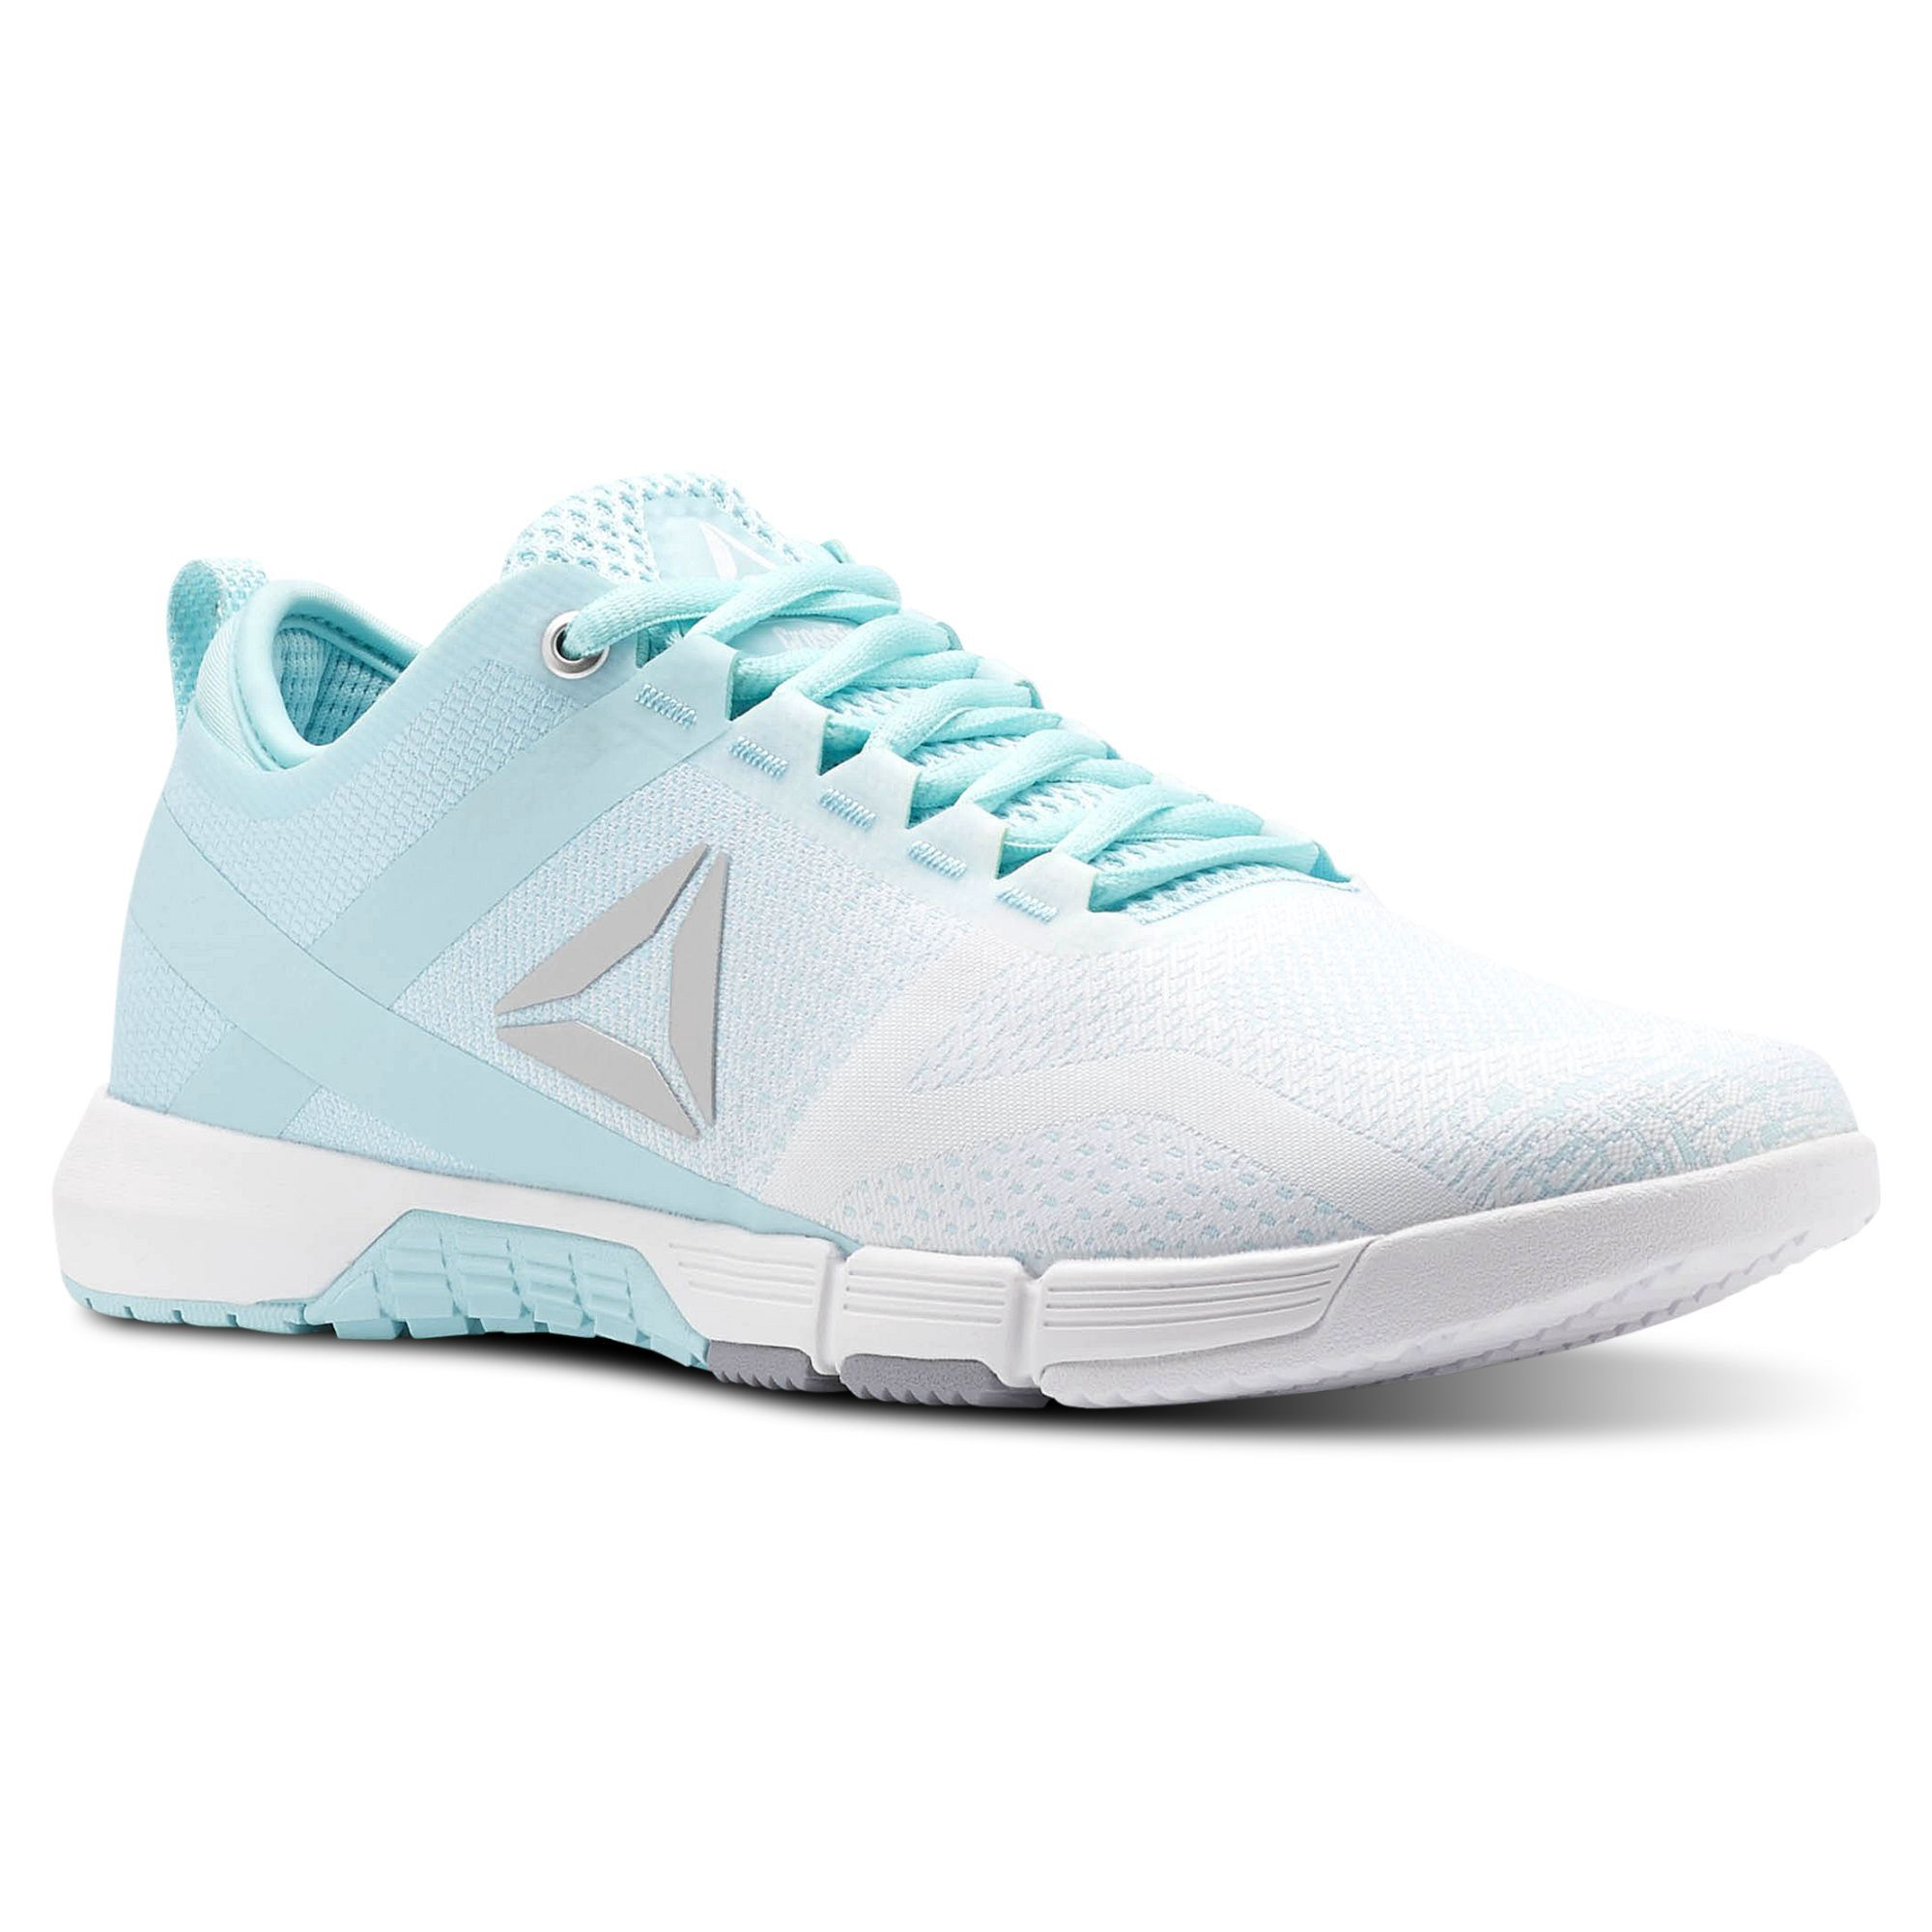 Reebok Crossfit Grace Blue Lagoon White Cool Shadow